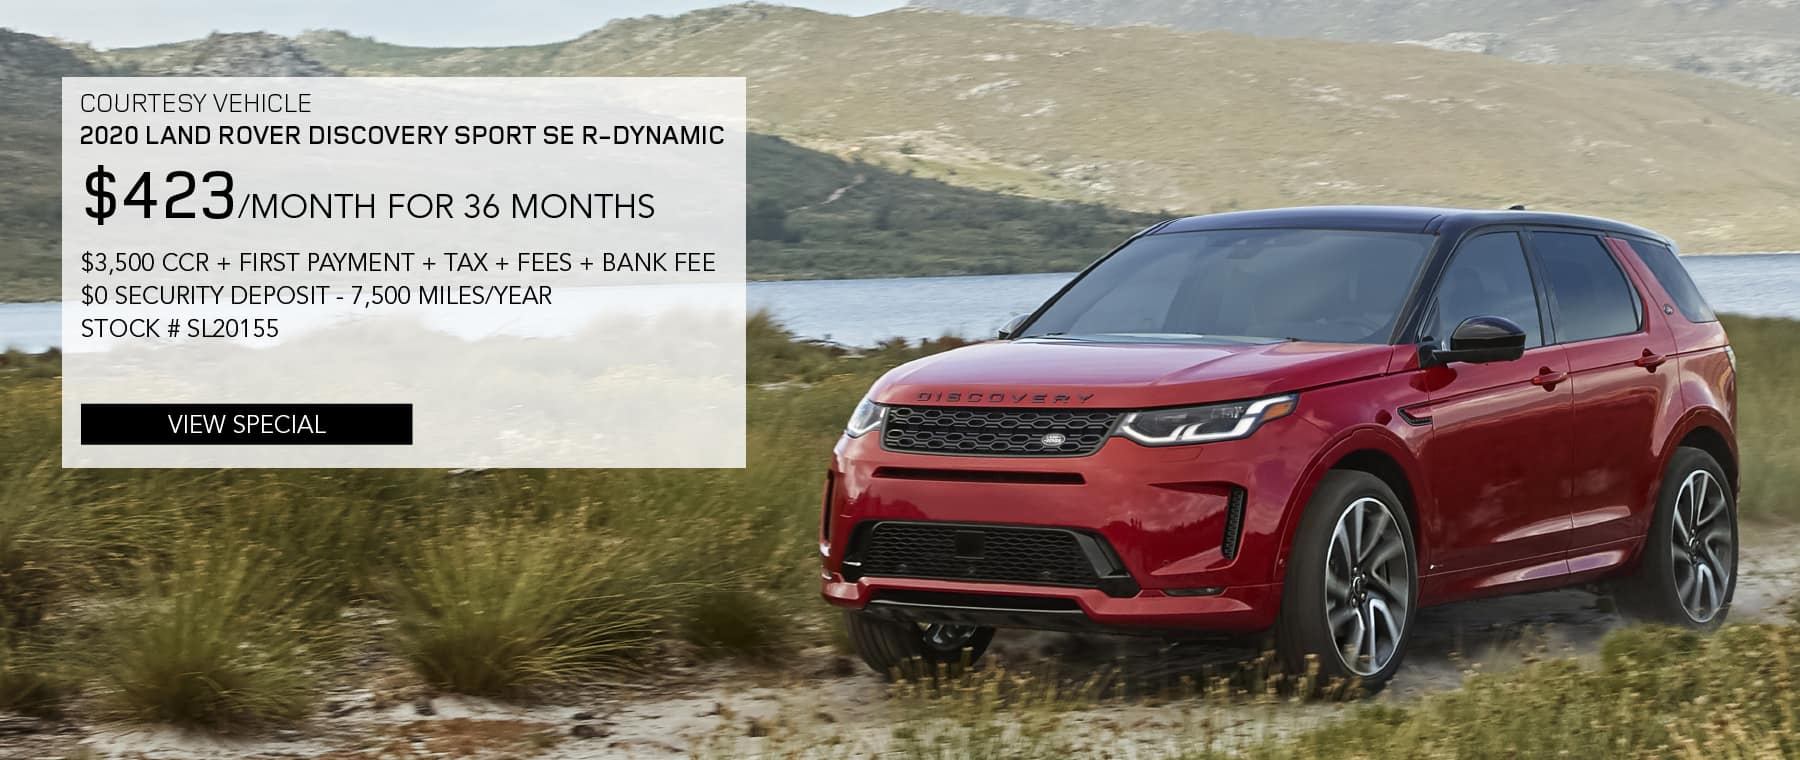 2020 Land Rover Discovery Sport SE R-Dynamic. $423 per month for 36 months. $3,500 CCR plus payment plus tax plus fees plus bank fees. $0 security deposit. 7,500 miles per year. Stock number SL20155. View Special. Red Discovery Sport parked on dirt road.